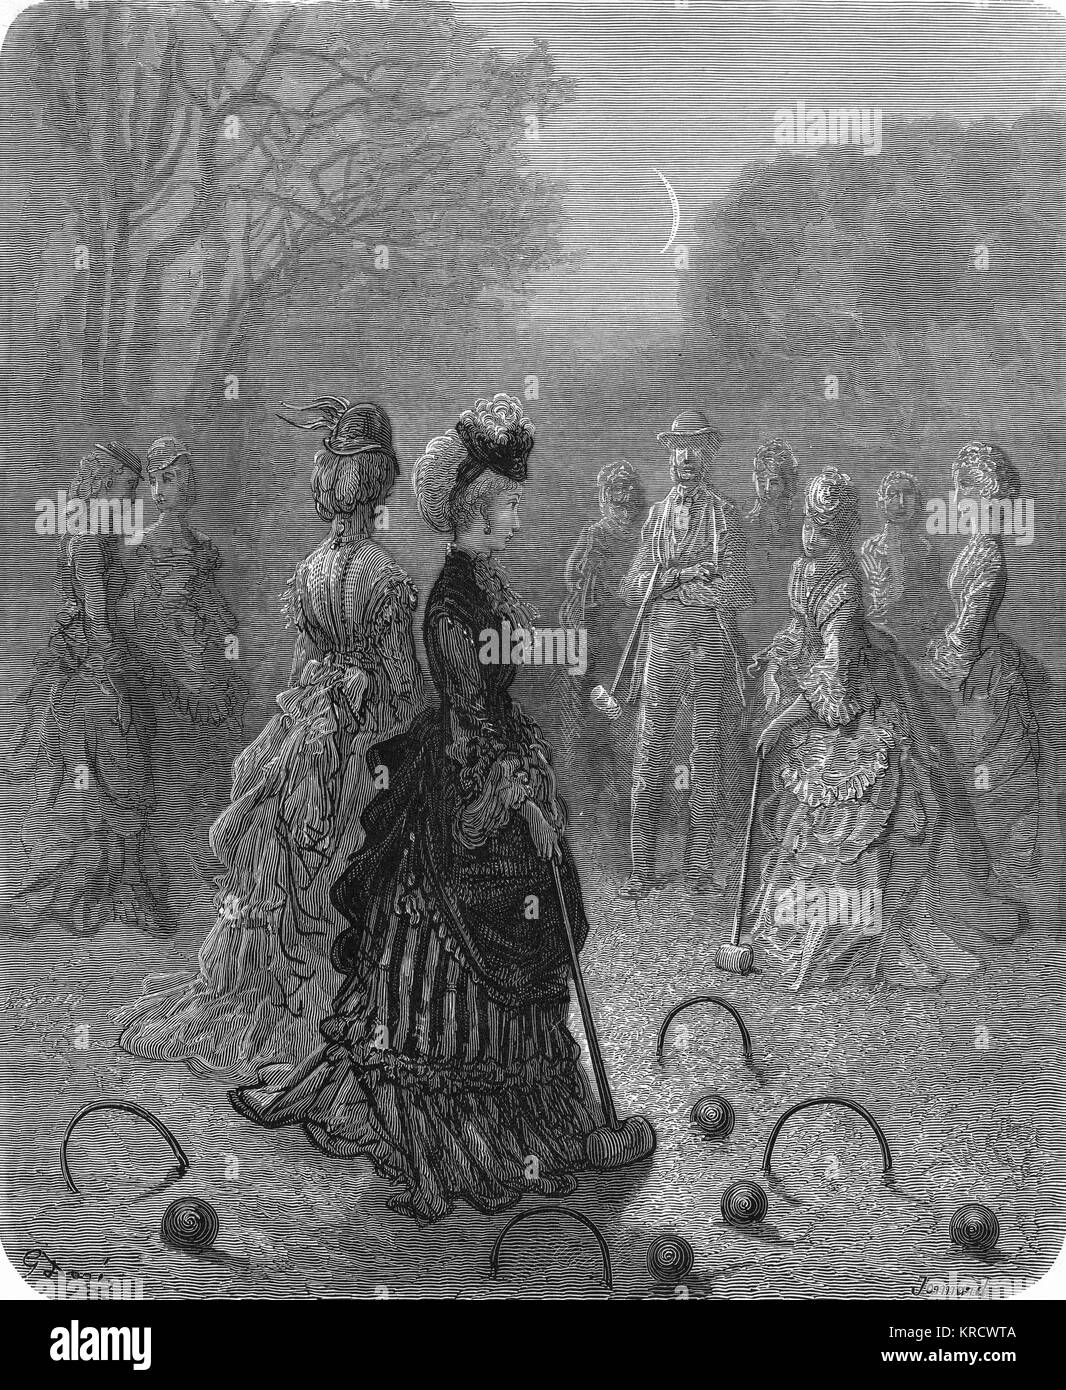 London's ladies and gentlemen even play croquet at night! The central player seems rather distracted though... - Stock Image